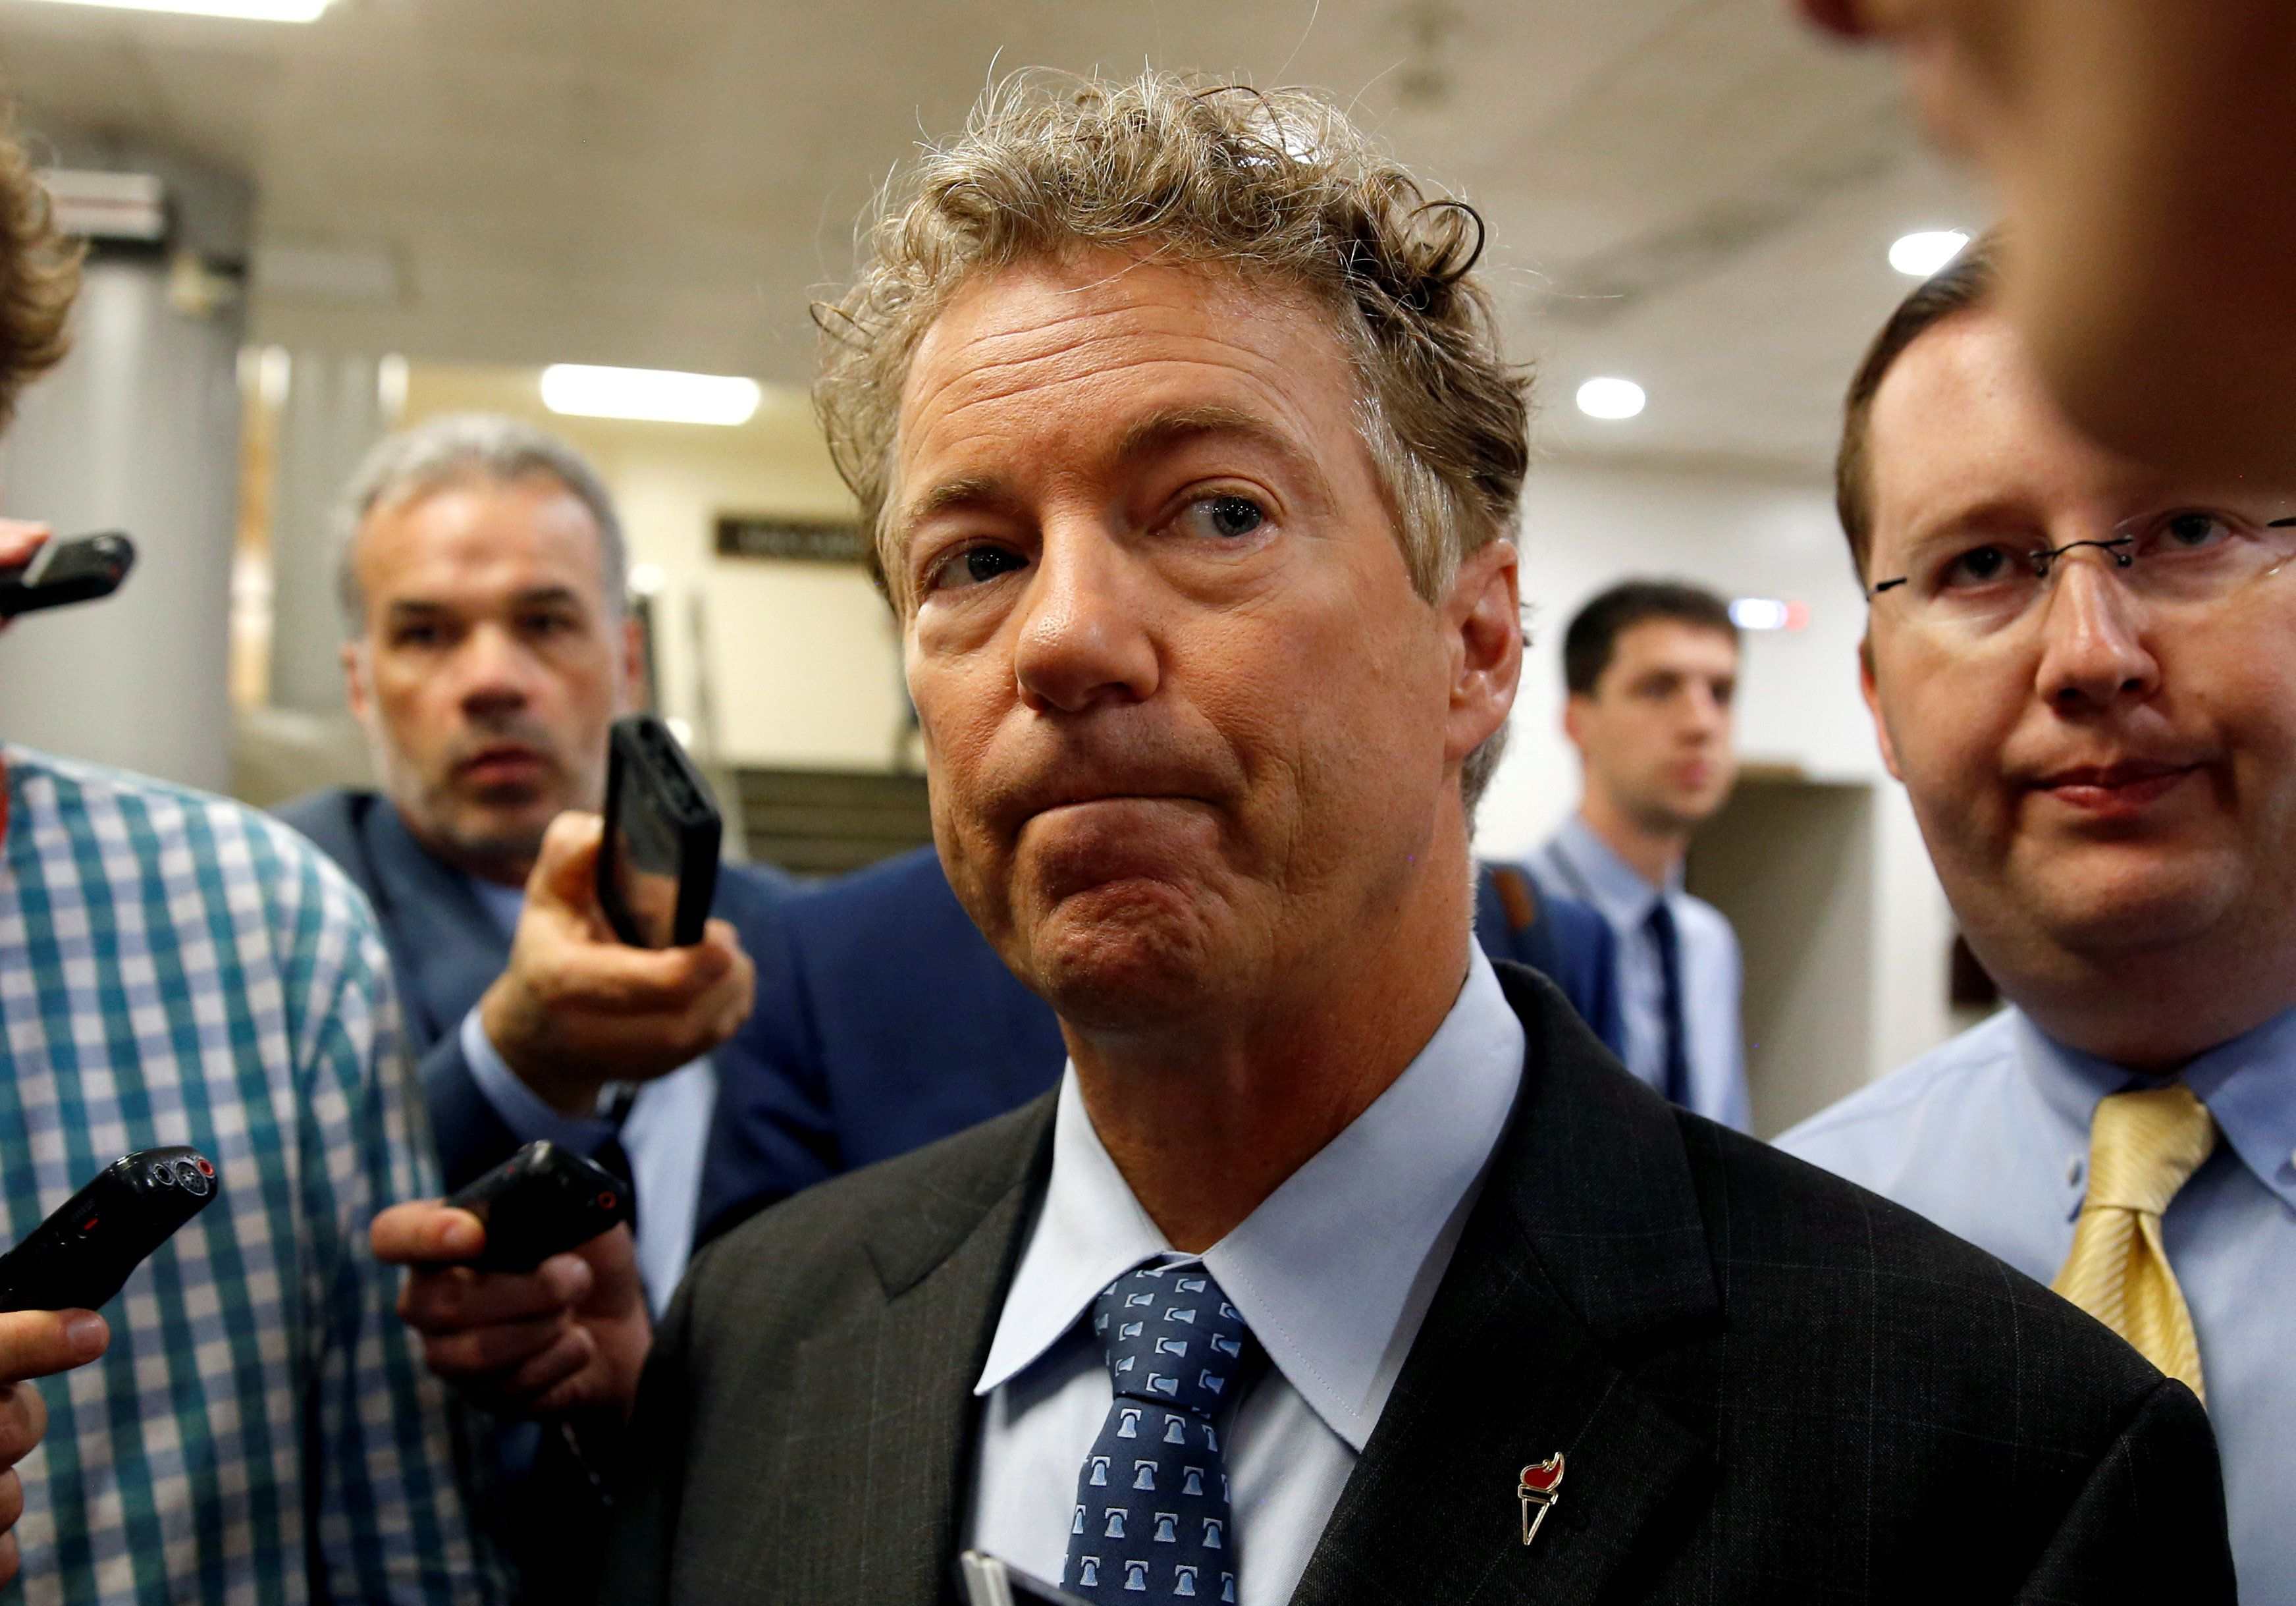 Rand Paul suffered minor injuries in an attack in his home